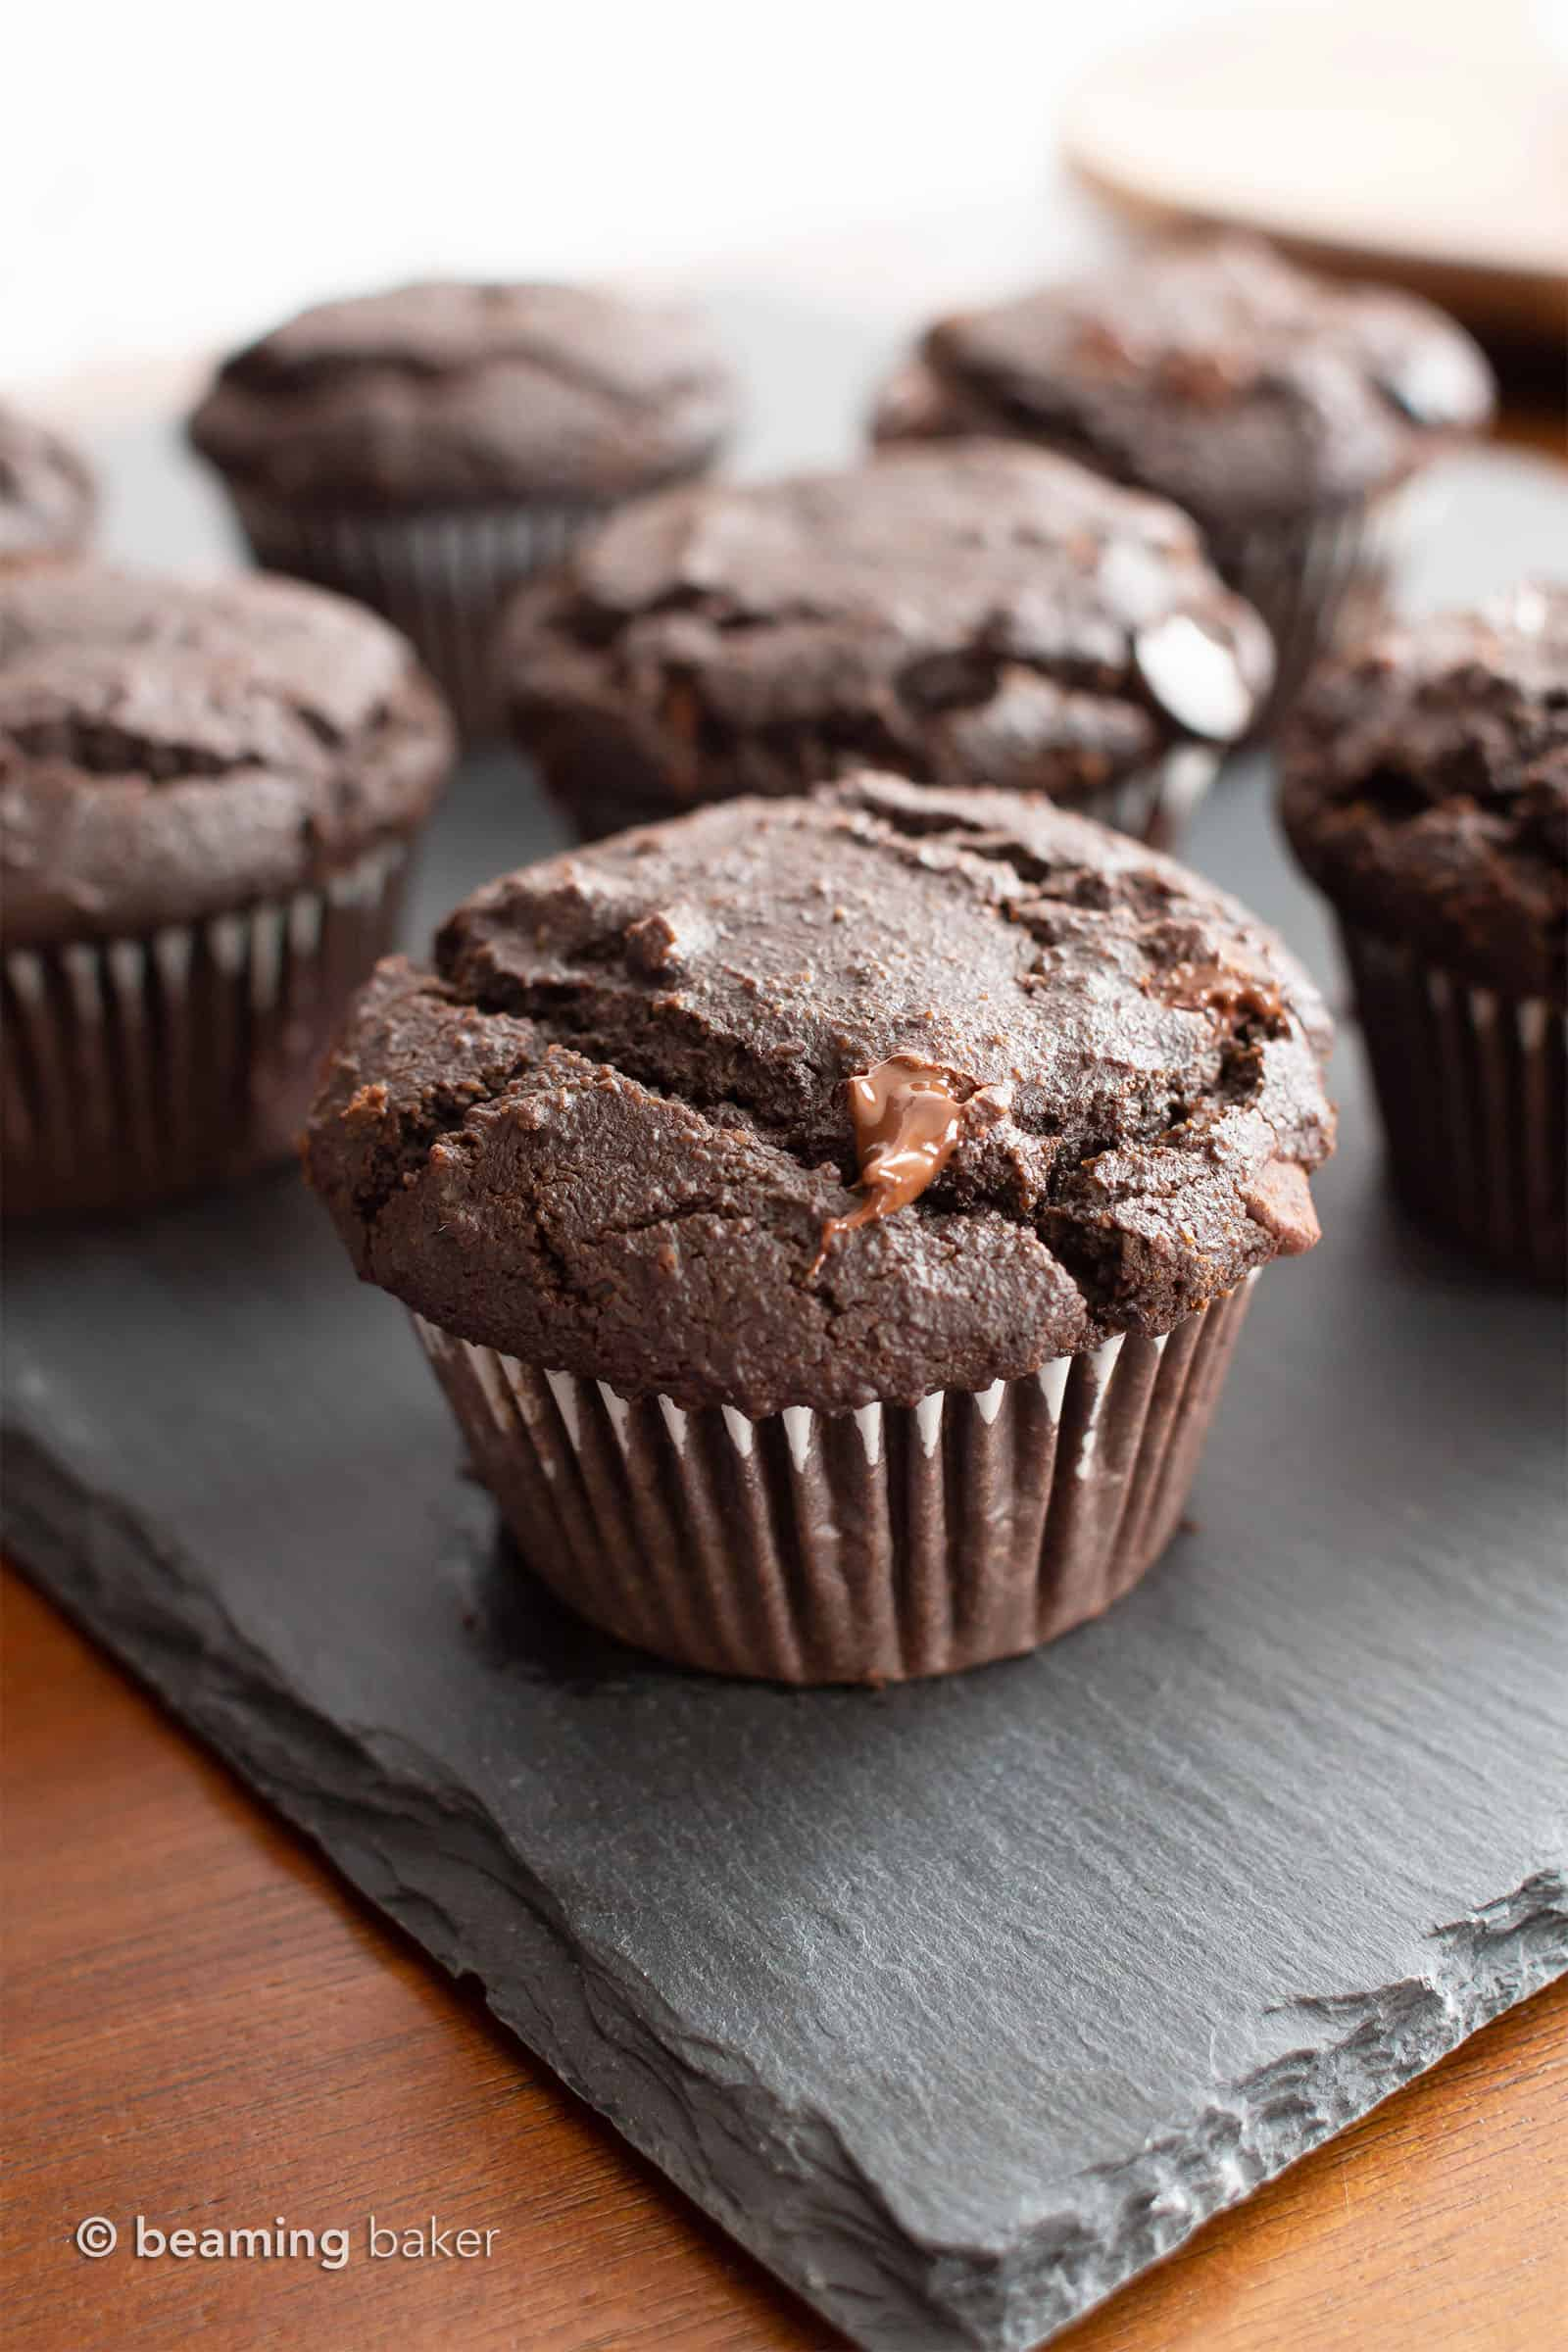 Paleo Chocolate Muffins: moist Gluten Free chocolate muffins with almond flour, tons of chocolate & crispy tops! Easy, Grain-Free, Vegan, Healthy ingredients. #Paleo #Muffins #GlutenFree #Chocolate | Recipe at BeamingBaker.com